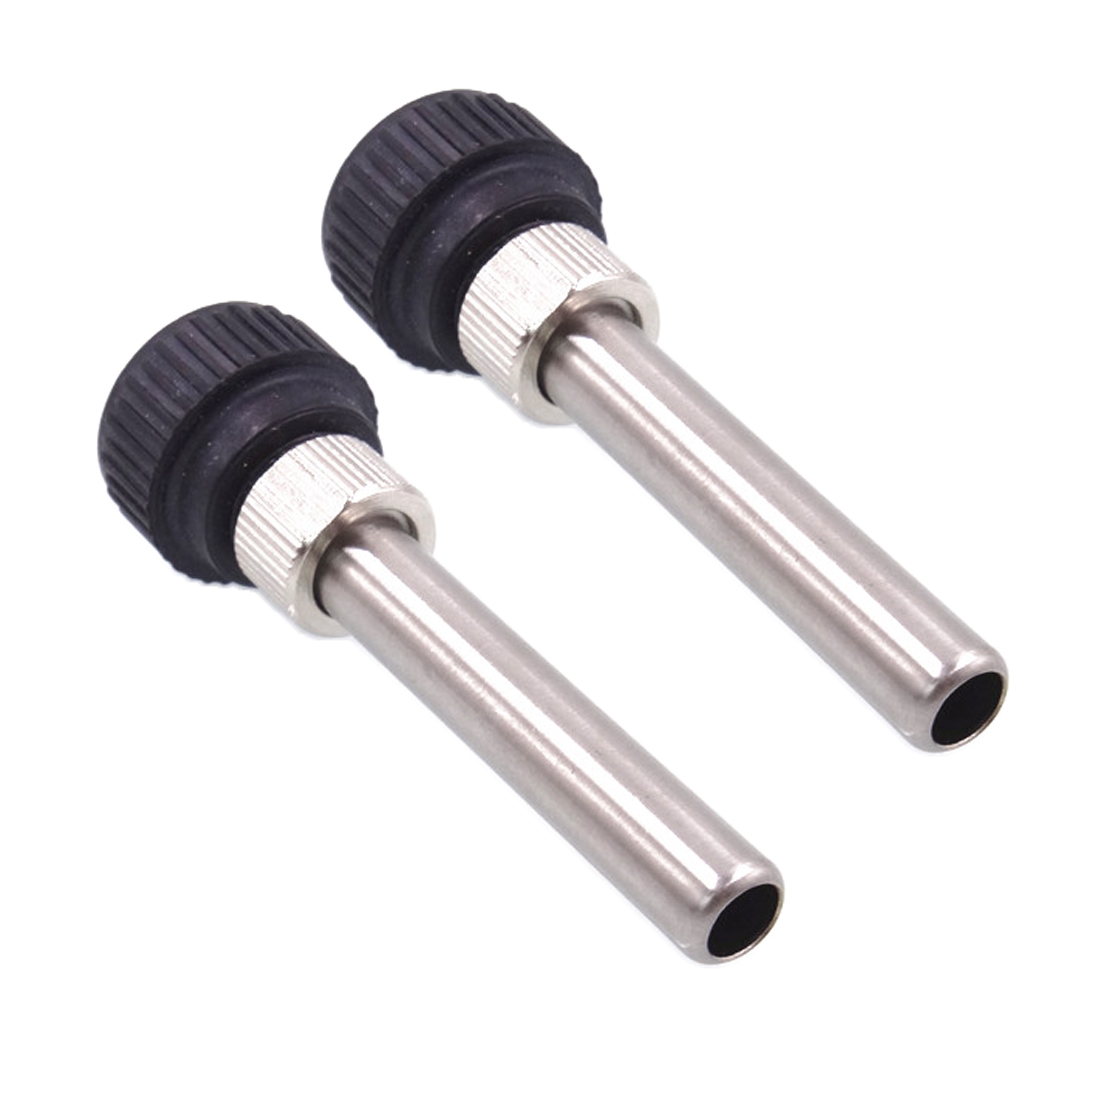 2pcs Soldering Station Iron Handle Accessories For 852D 936 937D 898D 907/ESD Iron Head Cannula Iron Tip Bushing